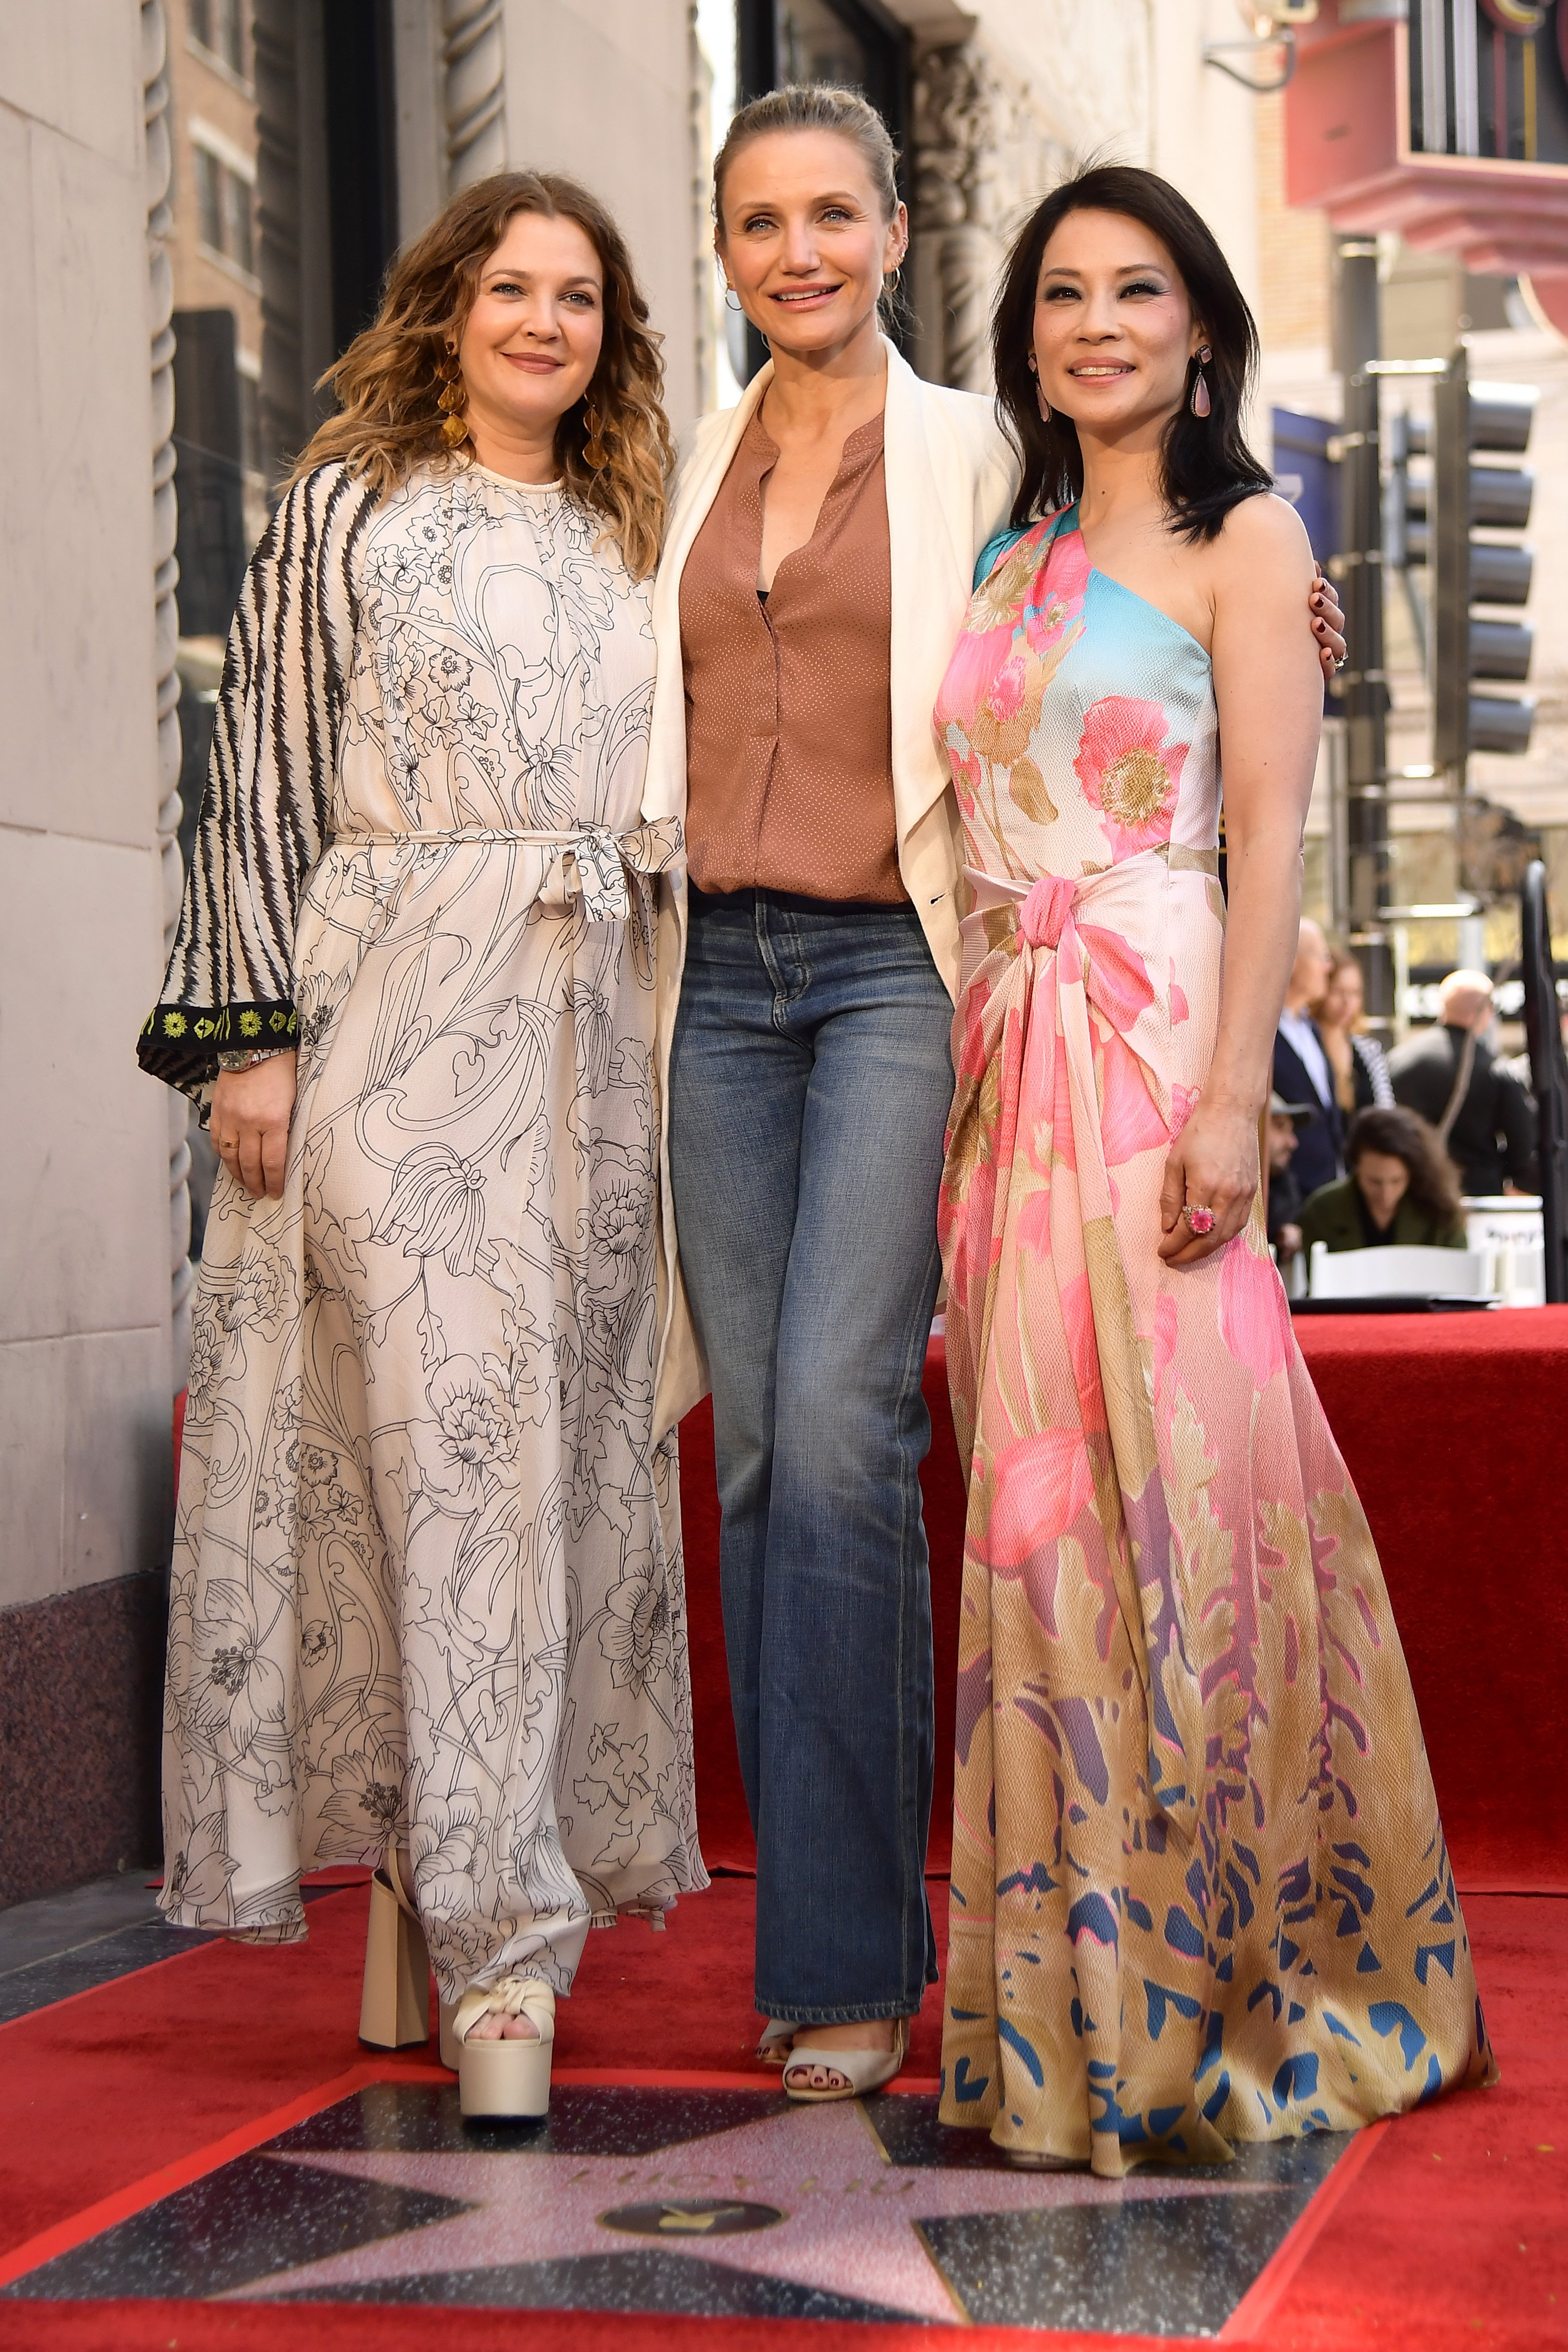 Drew Barrymore and Cameron Diaz at Lucy Liu's Star Cermony on The Hollywood Walk Of Fame on May 1, 2019 in Hollywood, California. | Photo: Getty Images